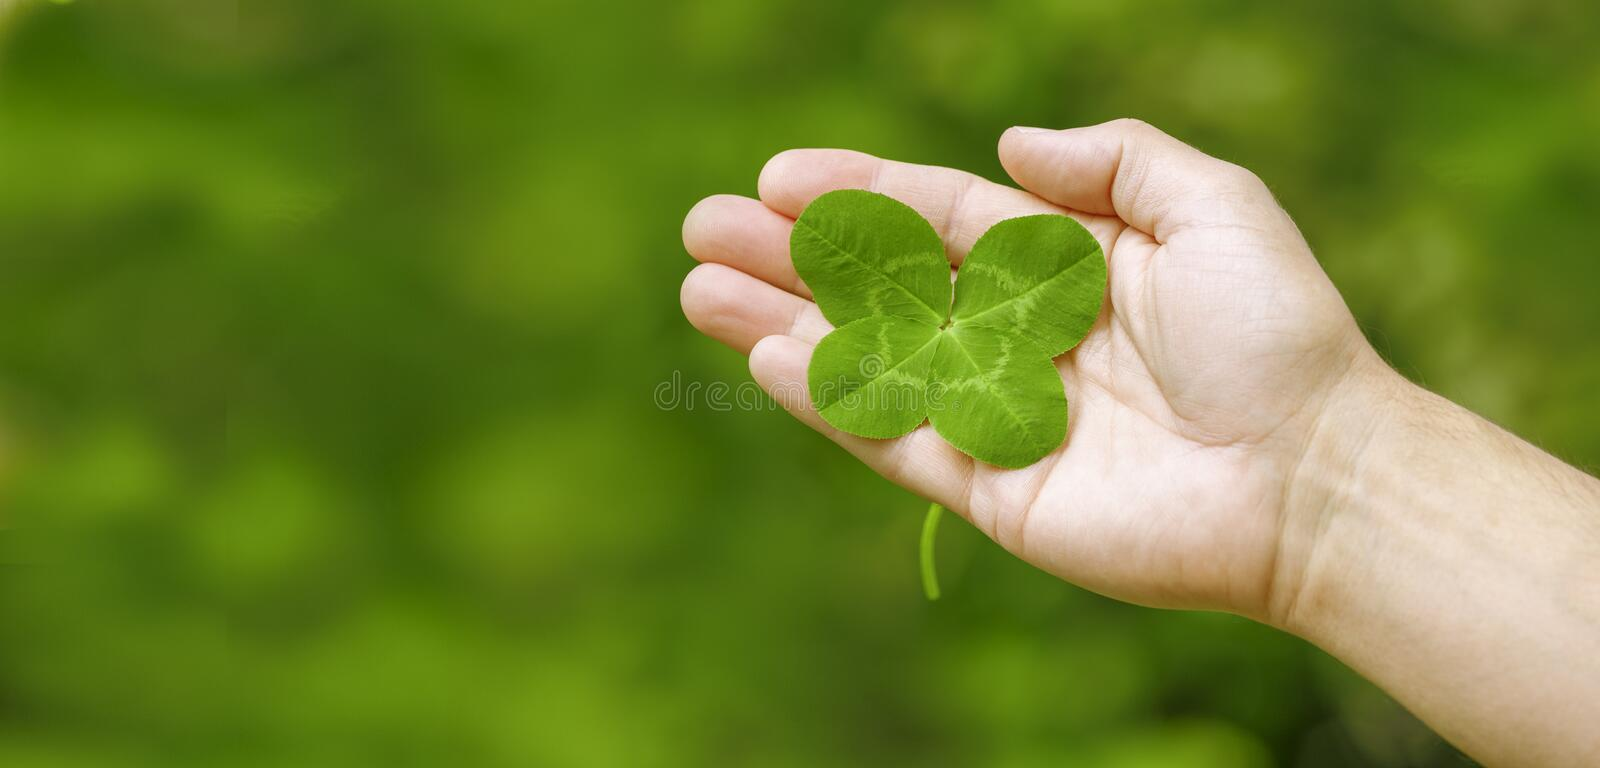 Clover in Hand royalty free stock images